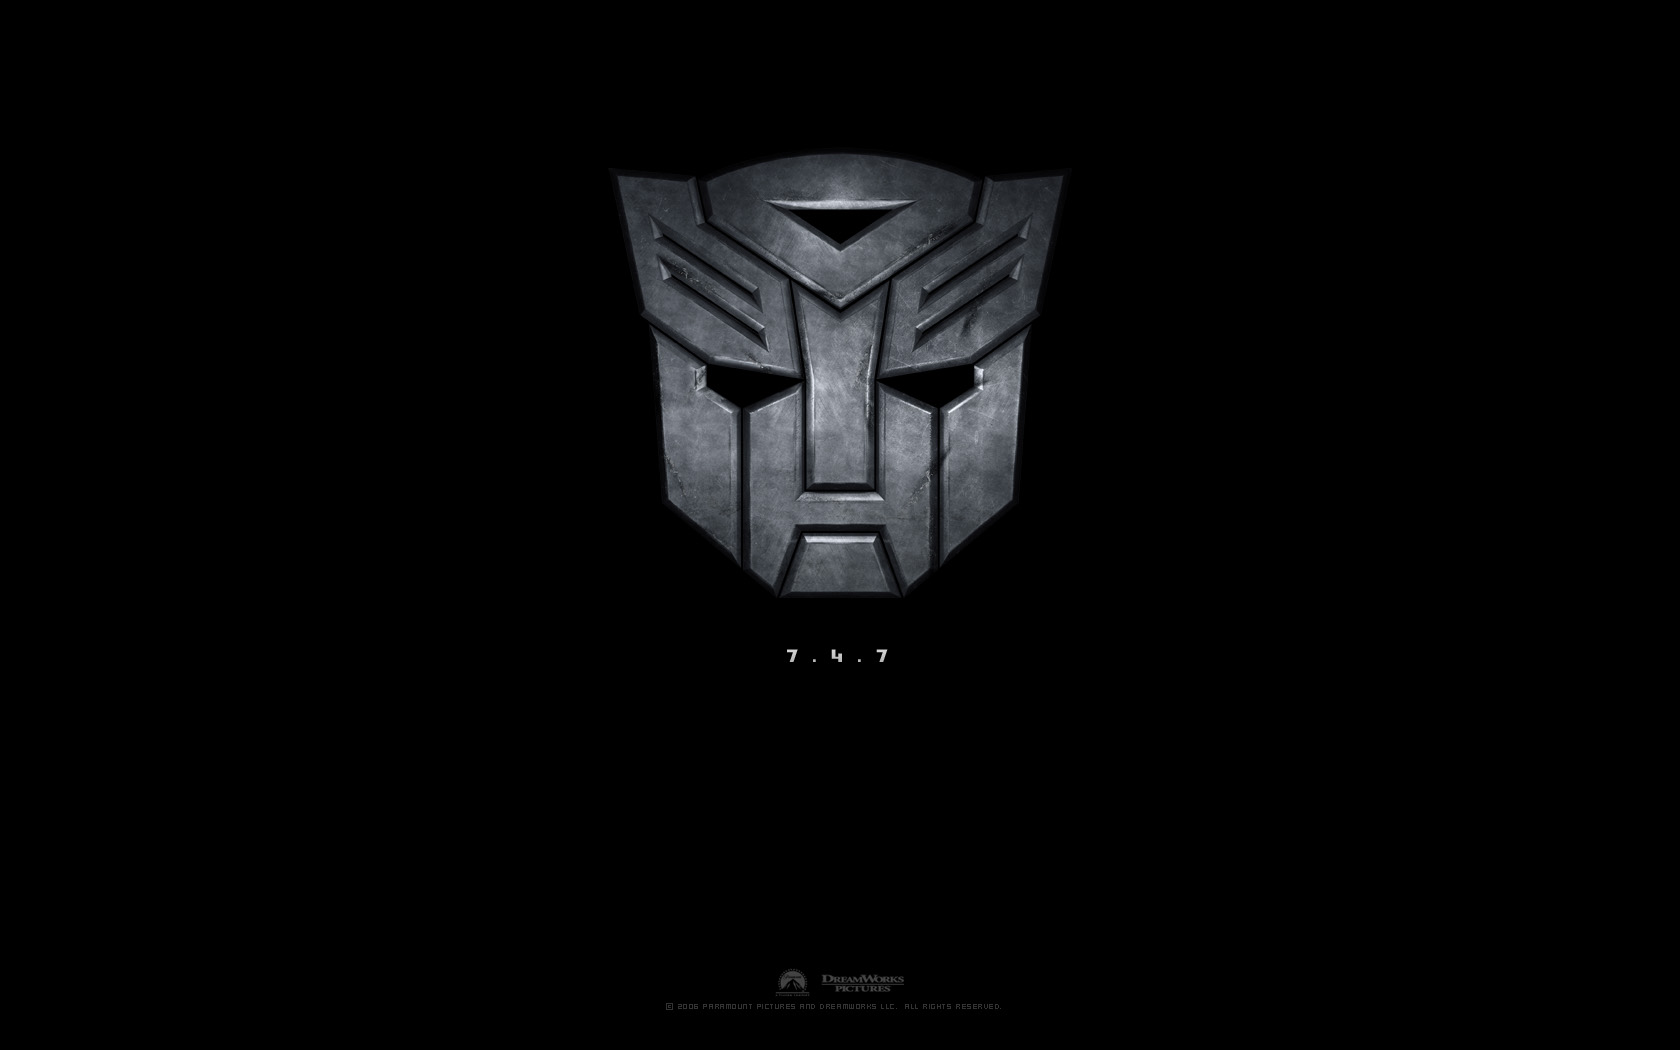 http://images.fanpop.com/images/image_uploads/Transformers-Movie--Autobots-transformers-35000_1680_1050.jpg